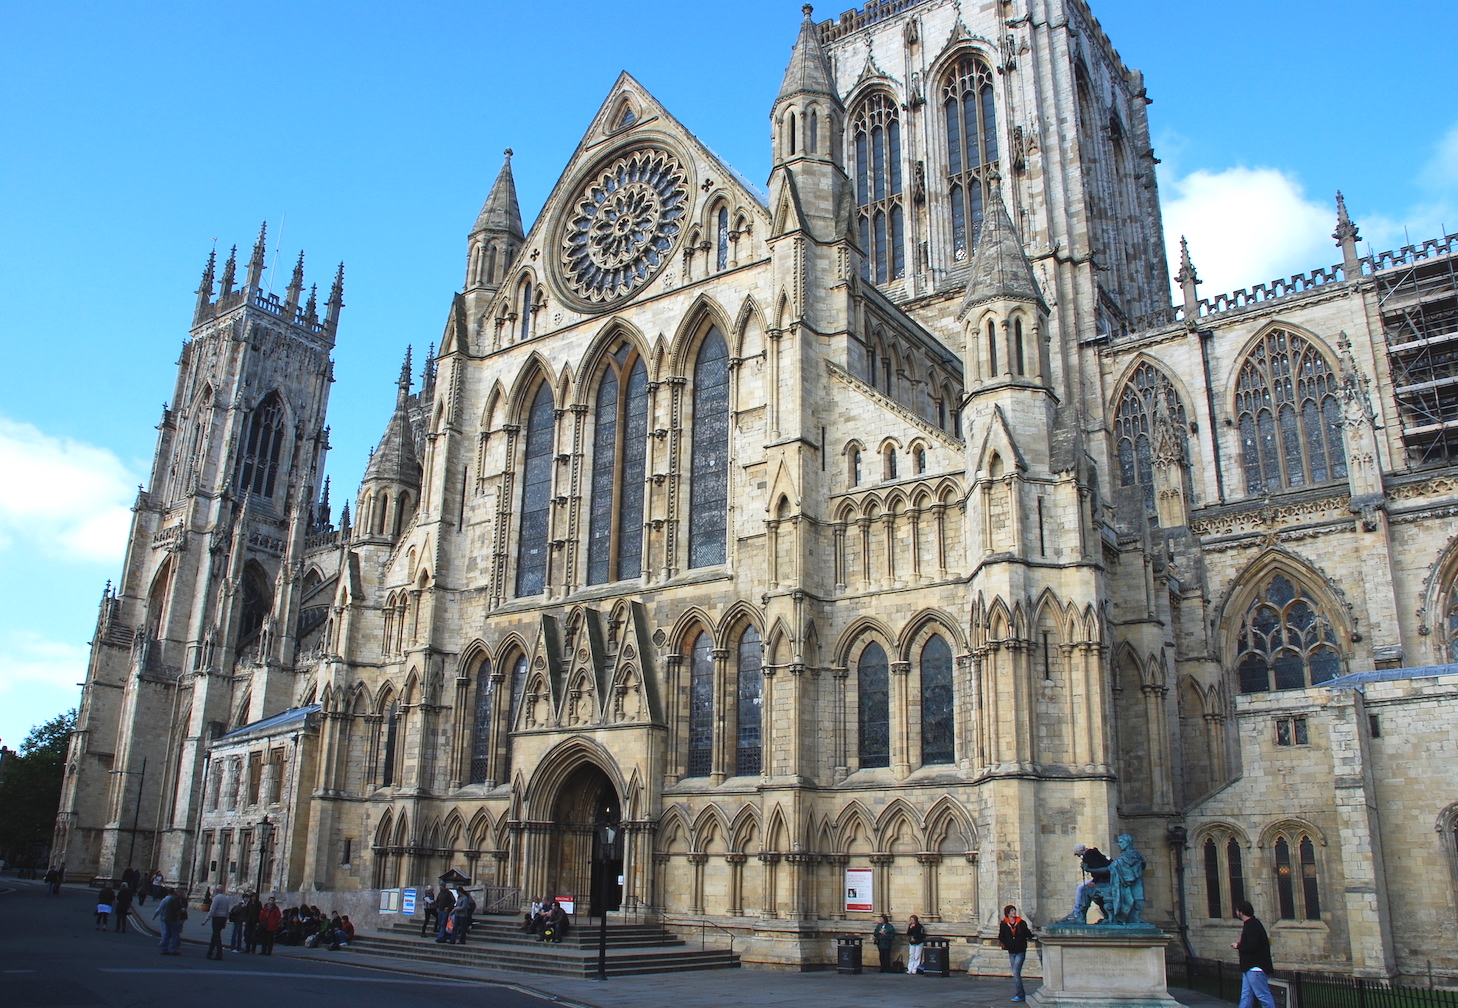 York Minster on Grand Tour of Great Britain.